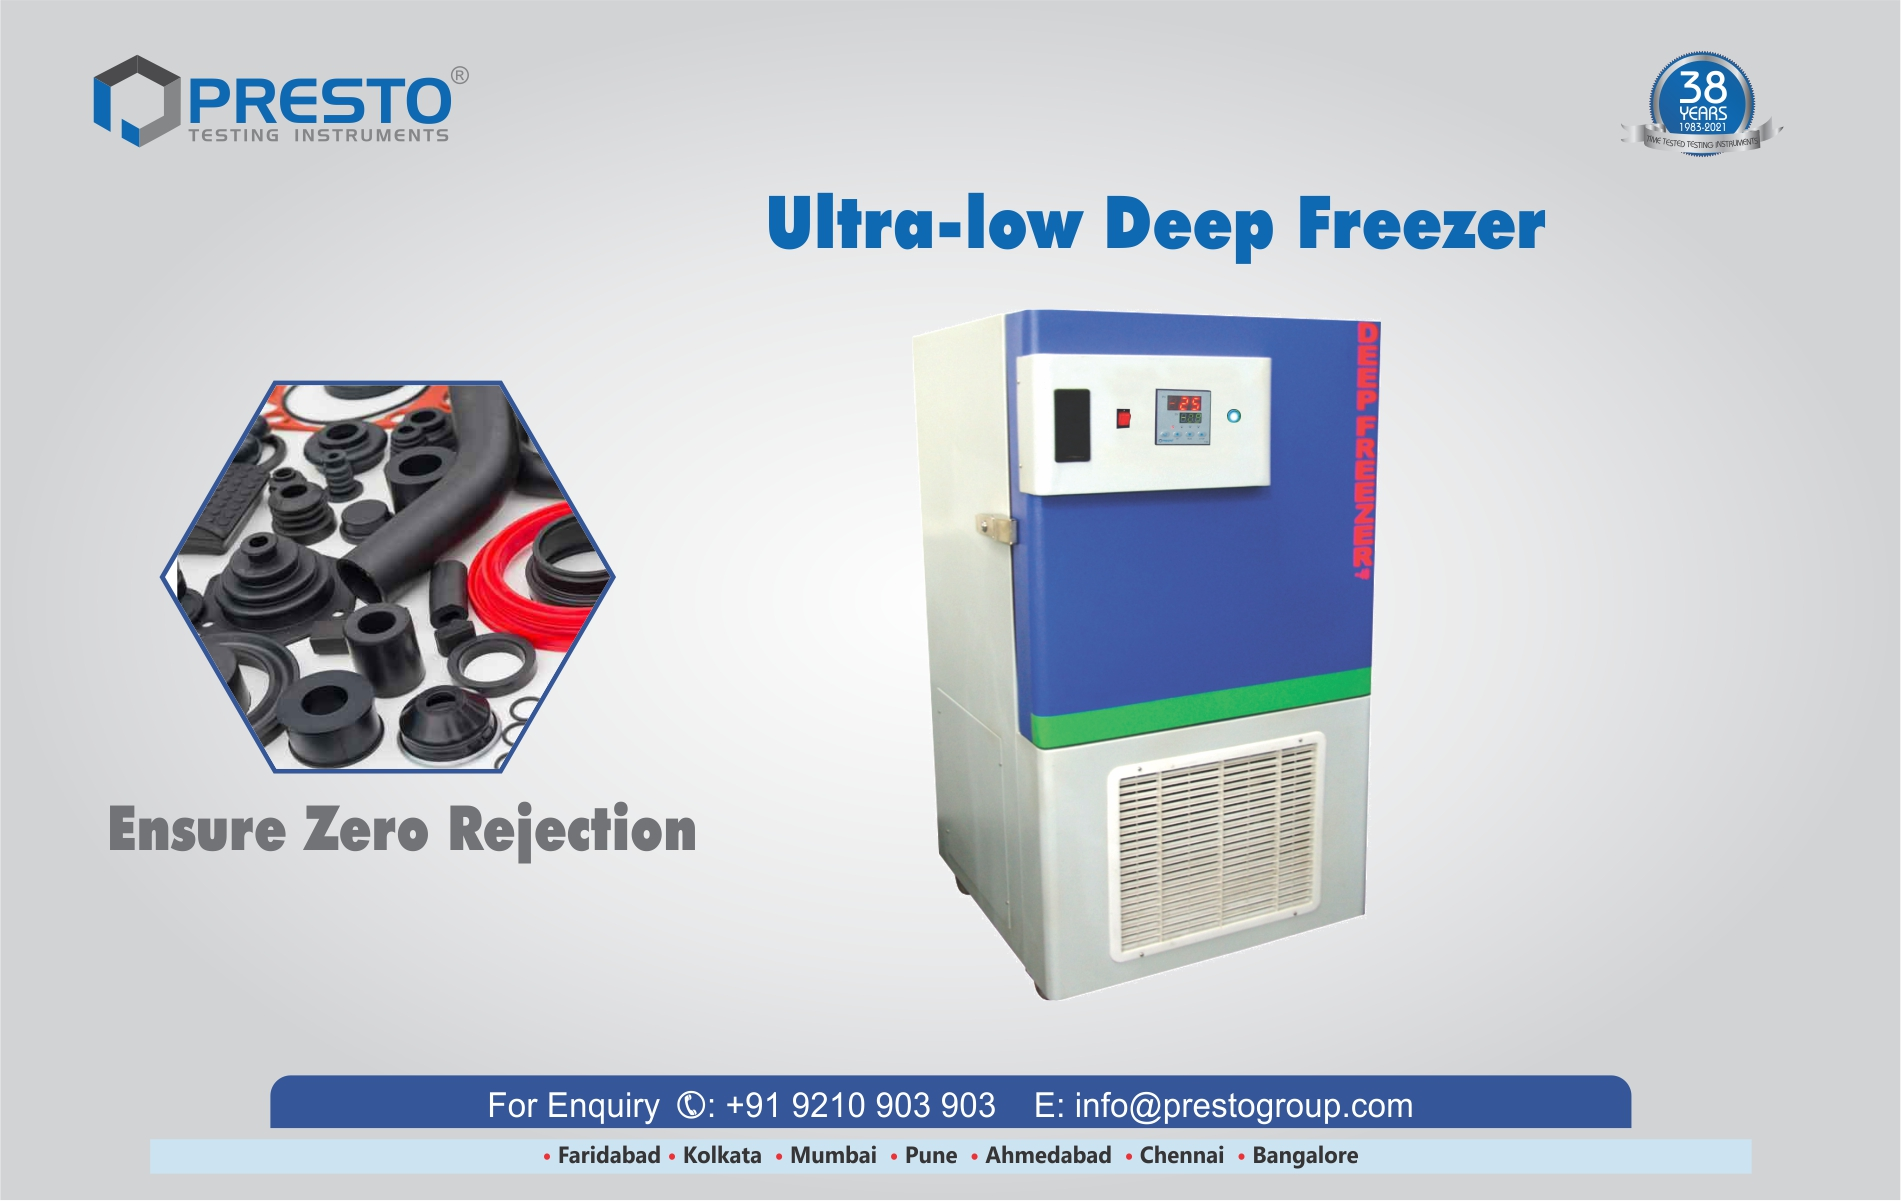 Ultra-low Deep freezer - Advanced Cold Storage Solution for